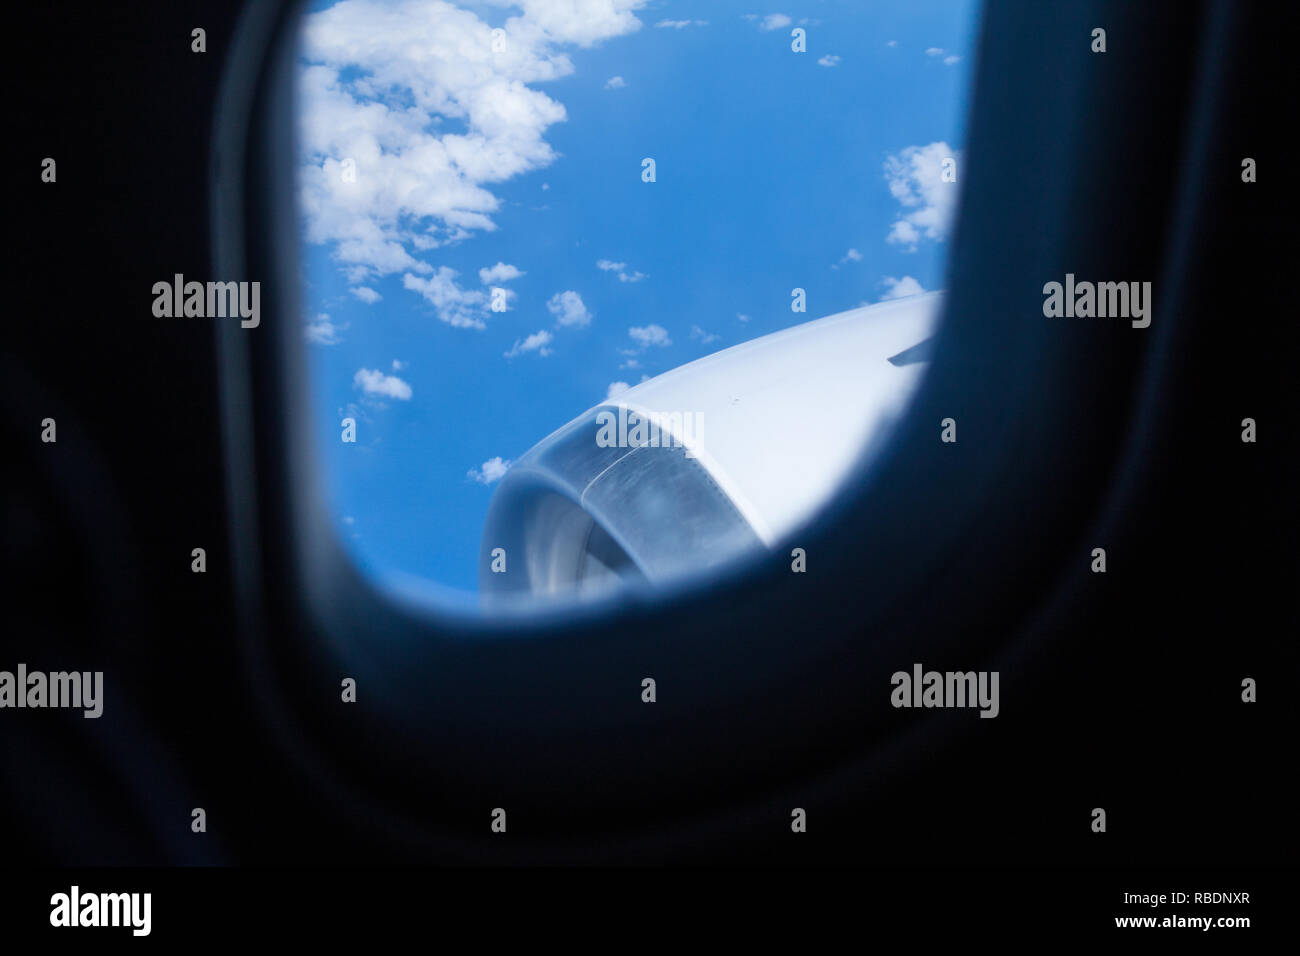 An engine of a large commercial airliner as seen thorough a window - Stock Image